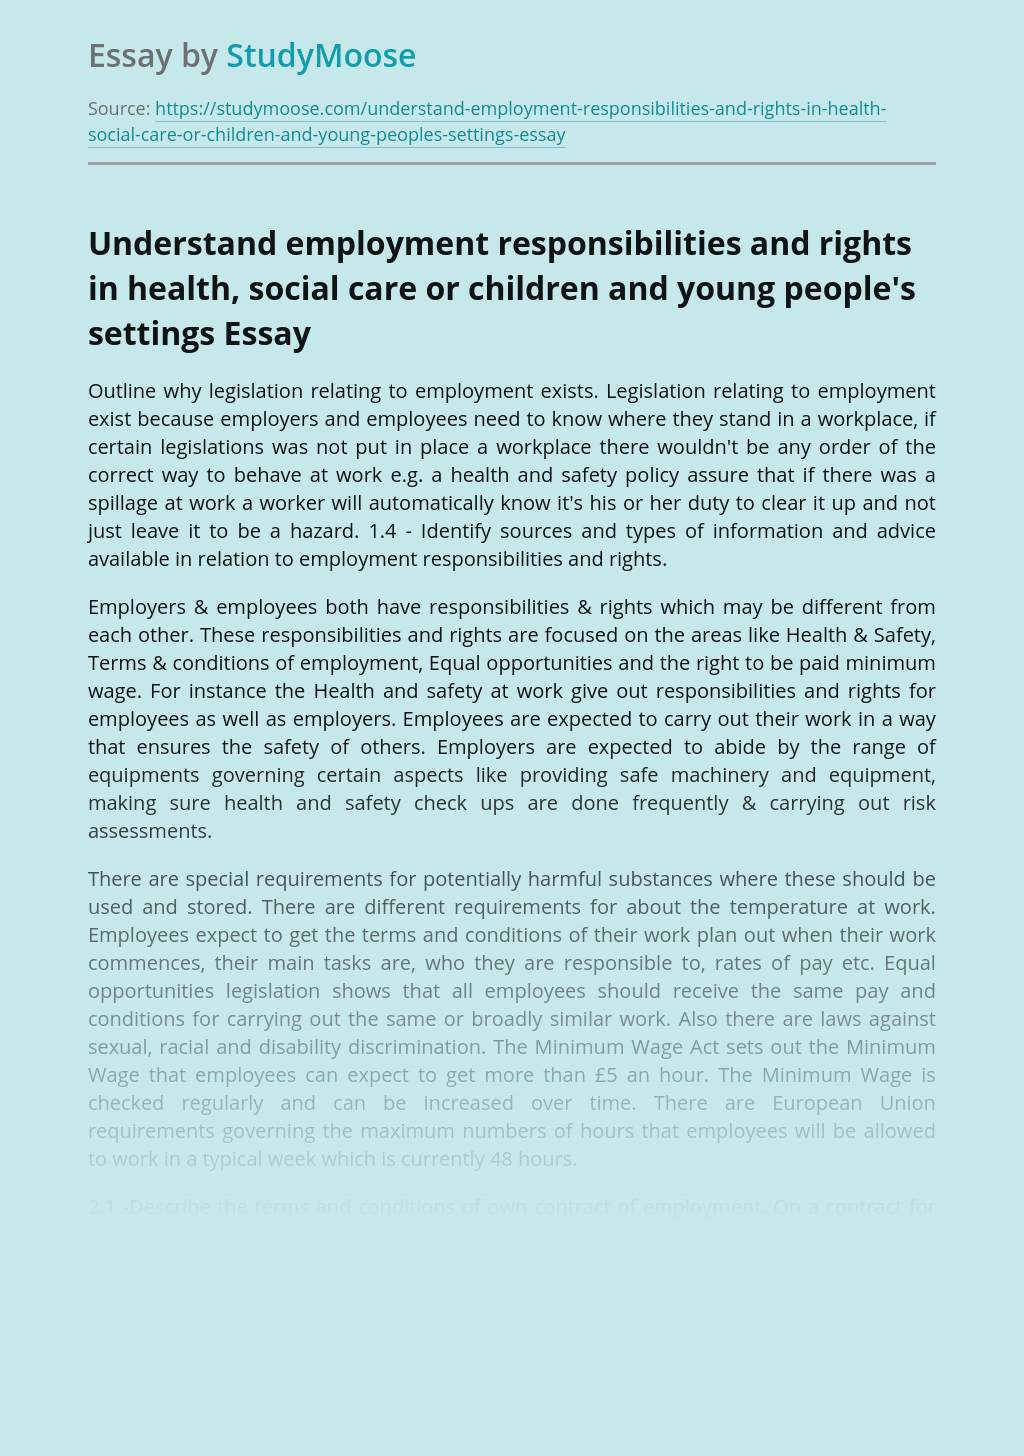 Understand employment responsibilities and rights in health, social care or children and young people's settings